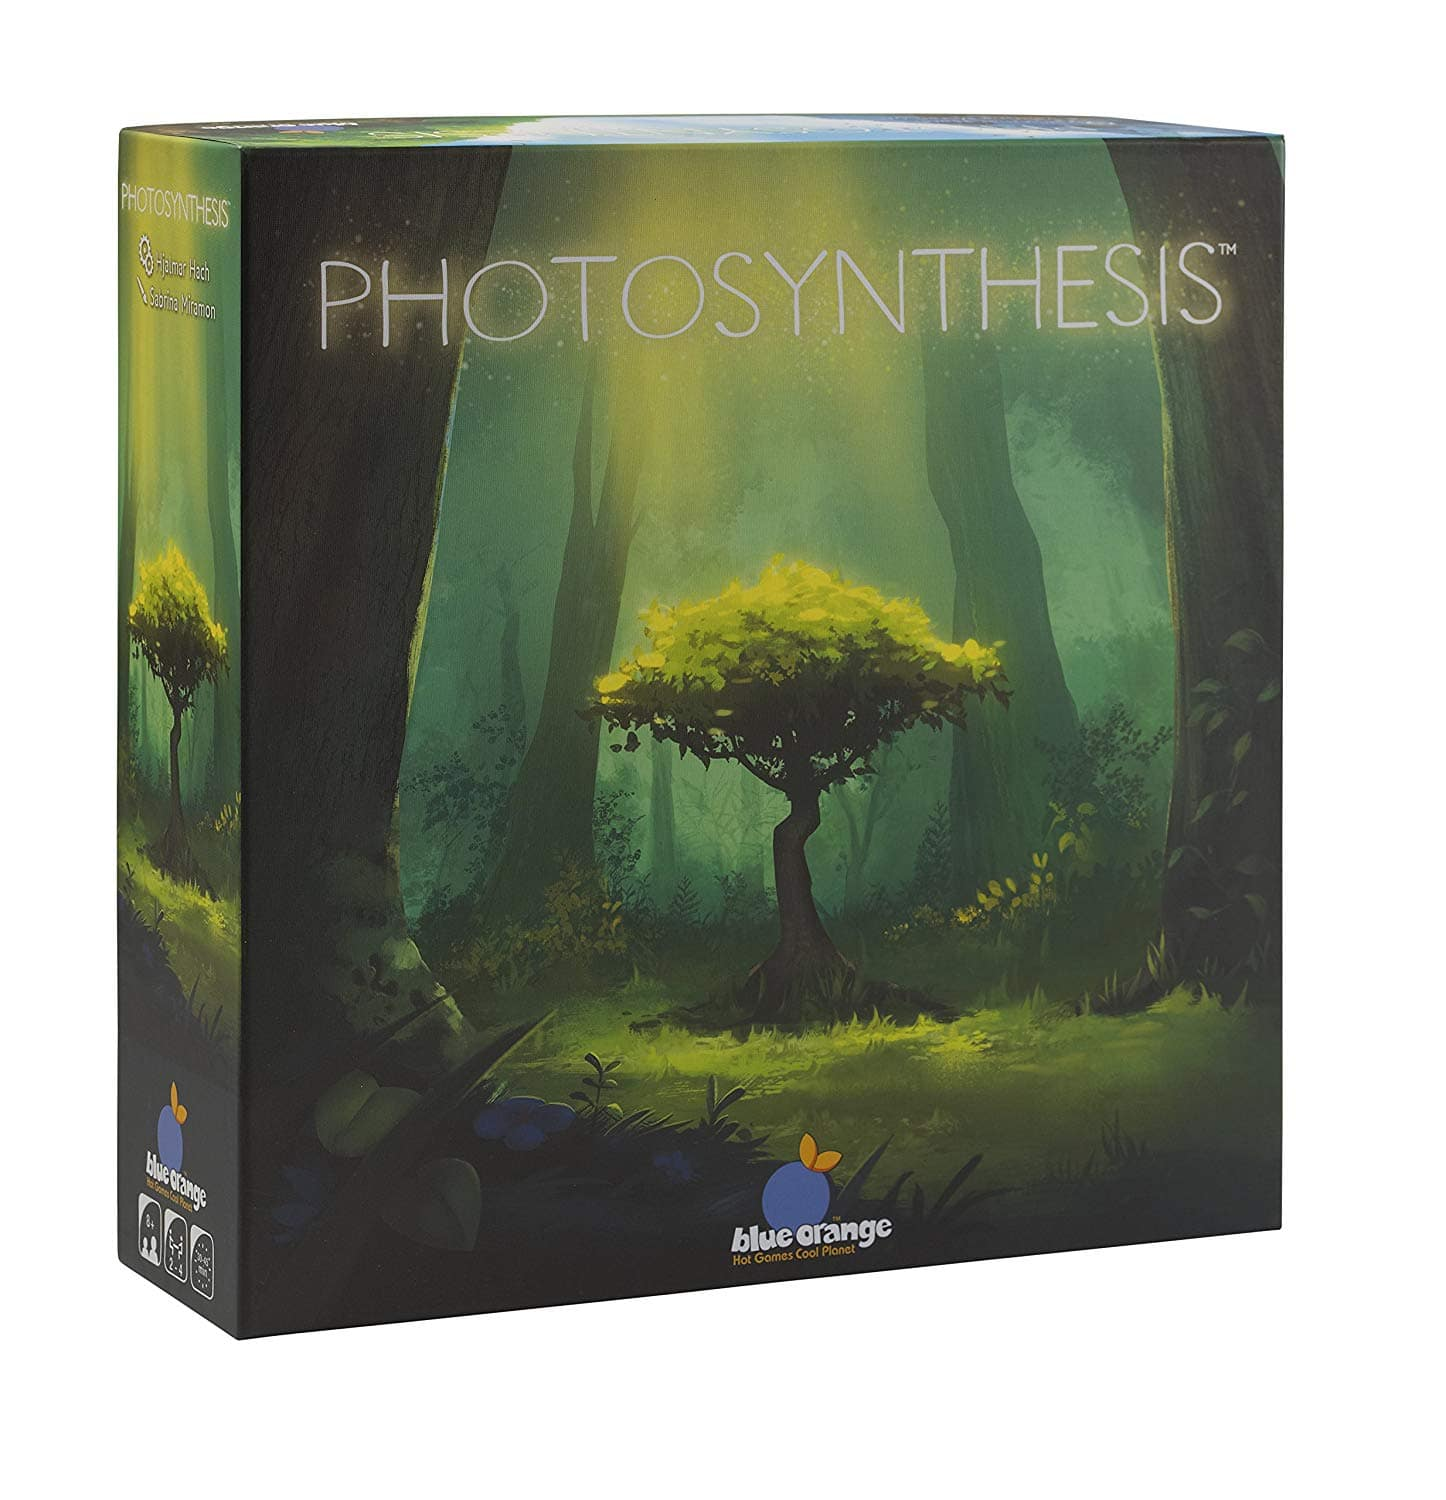 Board Games Sale: Photosynthesis $25.99, Munchkin Panic $14.99, Castle Panic: Engines of War $9.25, Sheriff of Nottingham $19.54, Legends of Andor $29.99 & More